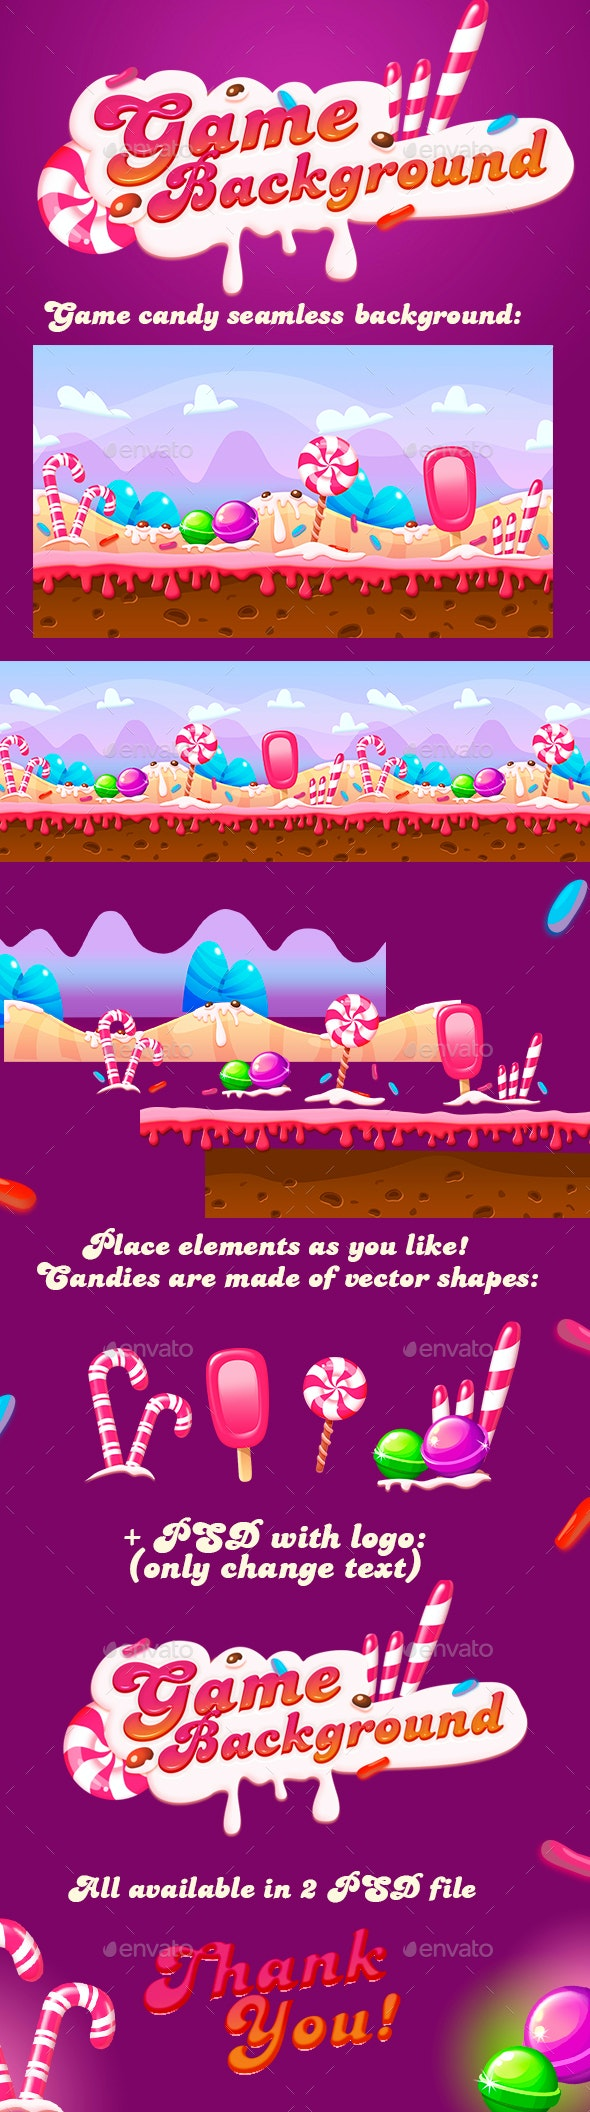 Seamless Candy Background For Game - Game Assets